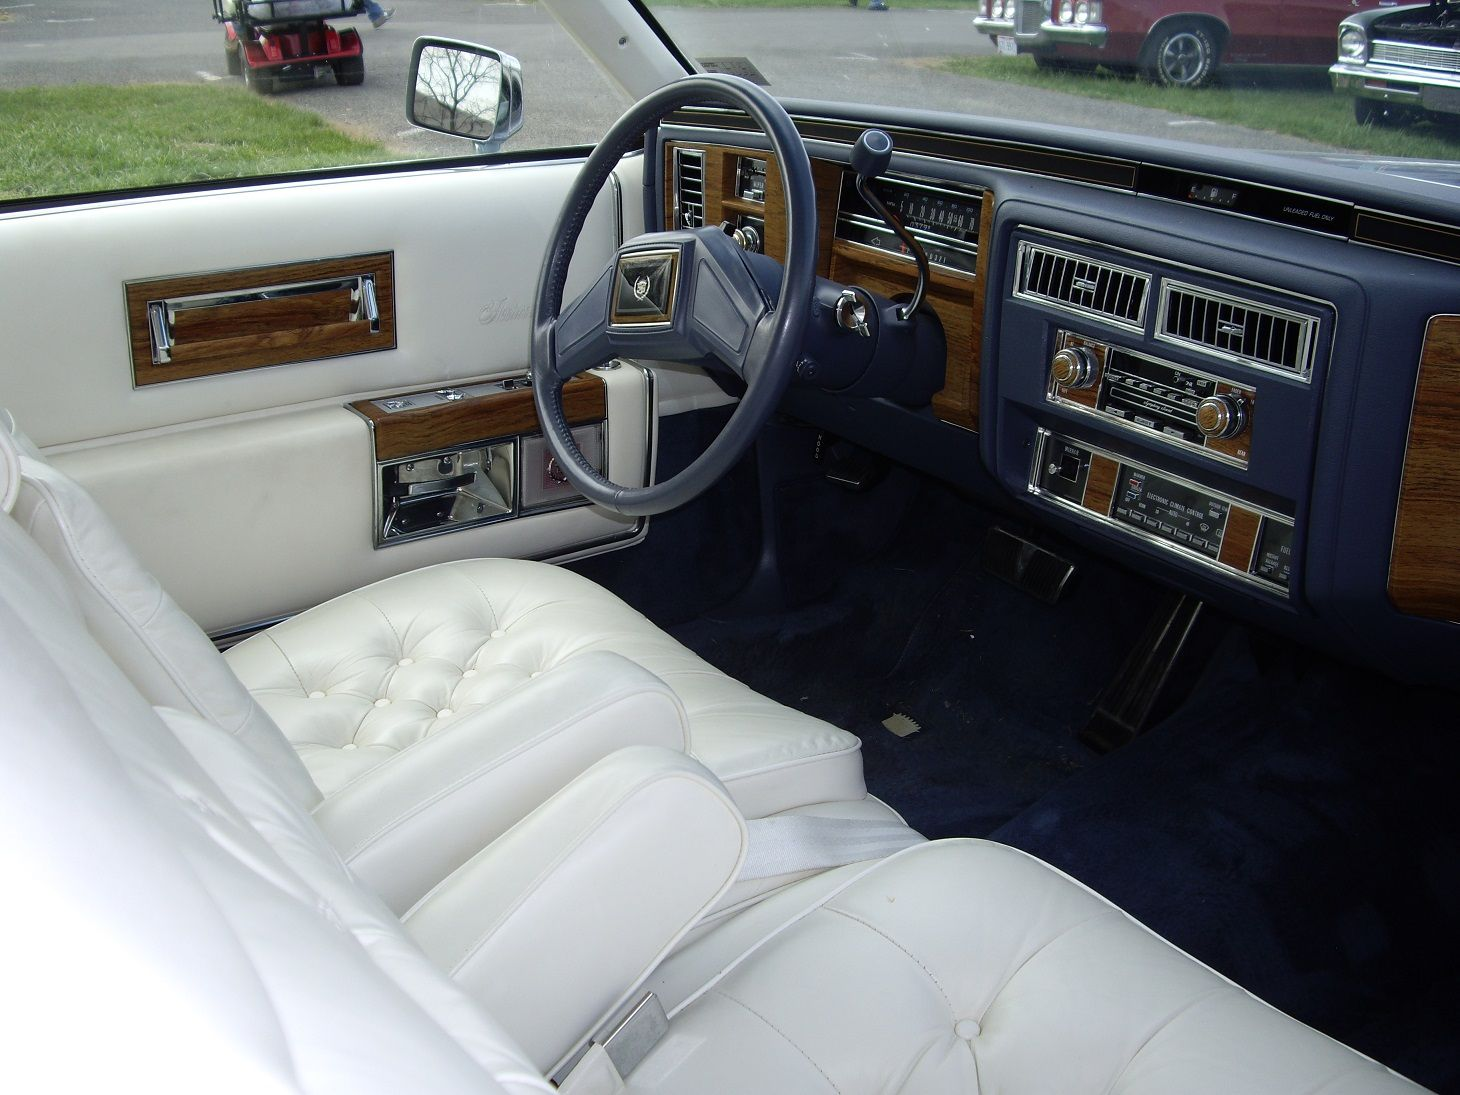 1984 cadillac fleetwood brougham coupe interior